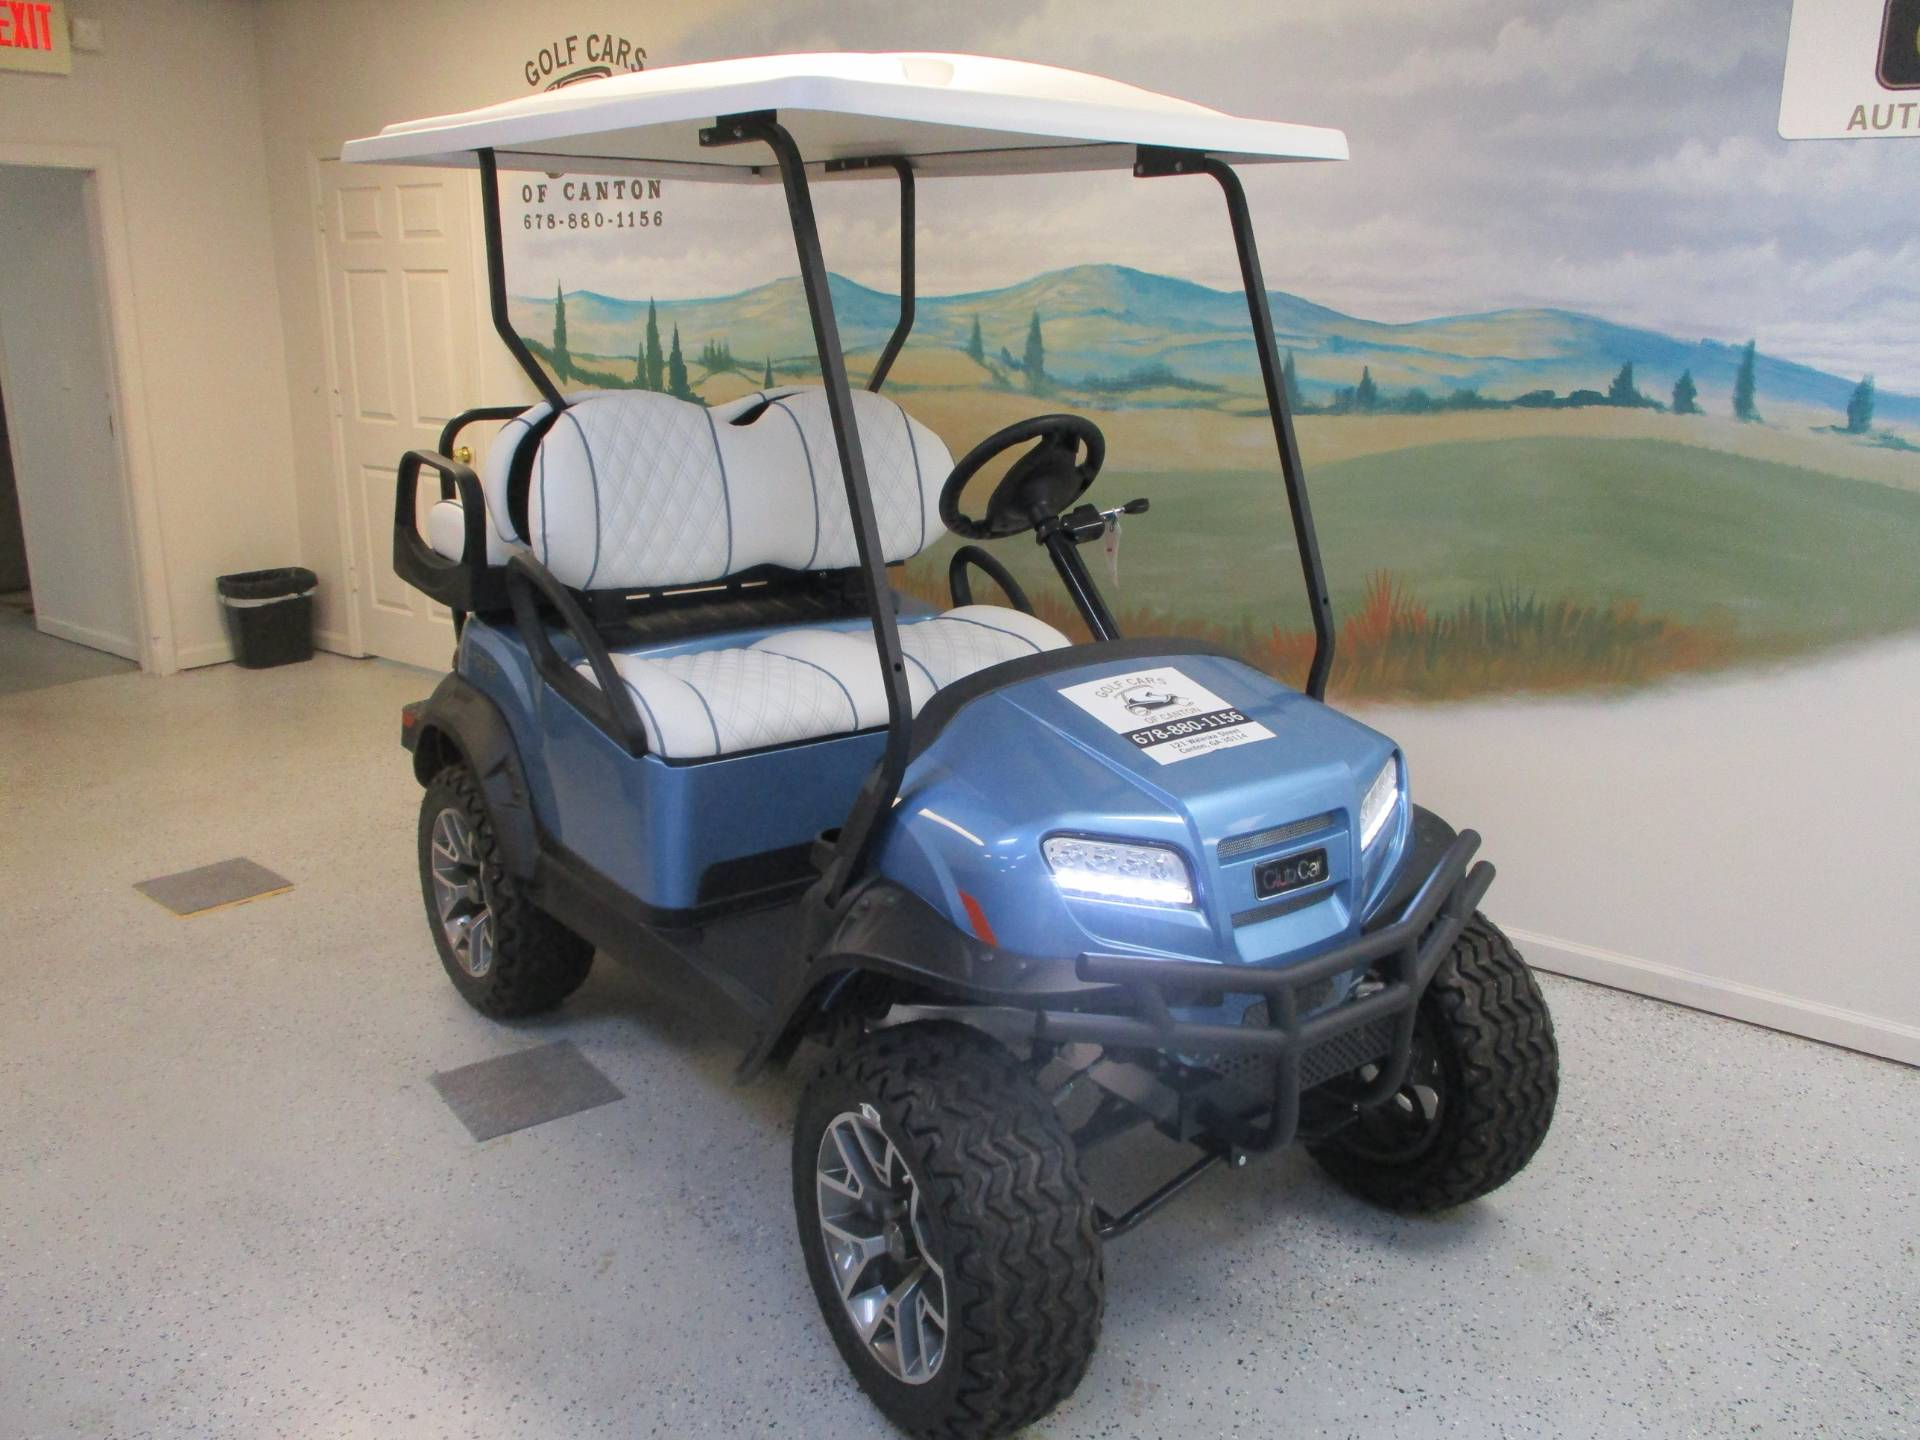 2020 Club Car Onward 4 Passenger Lifted Electric Ice Storm Edition in Canton, Georgia - Photo 1